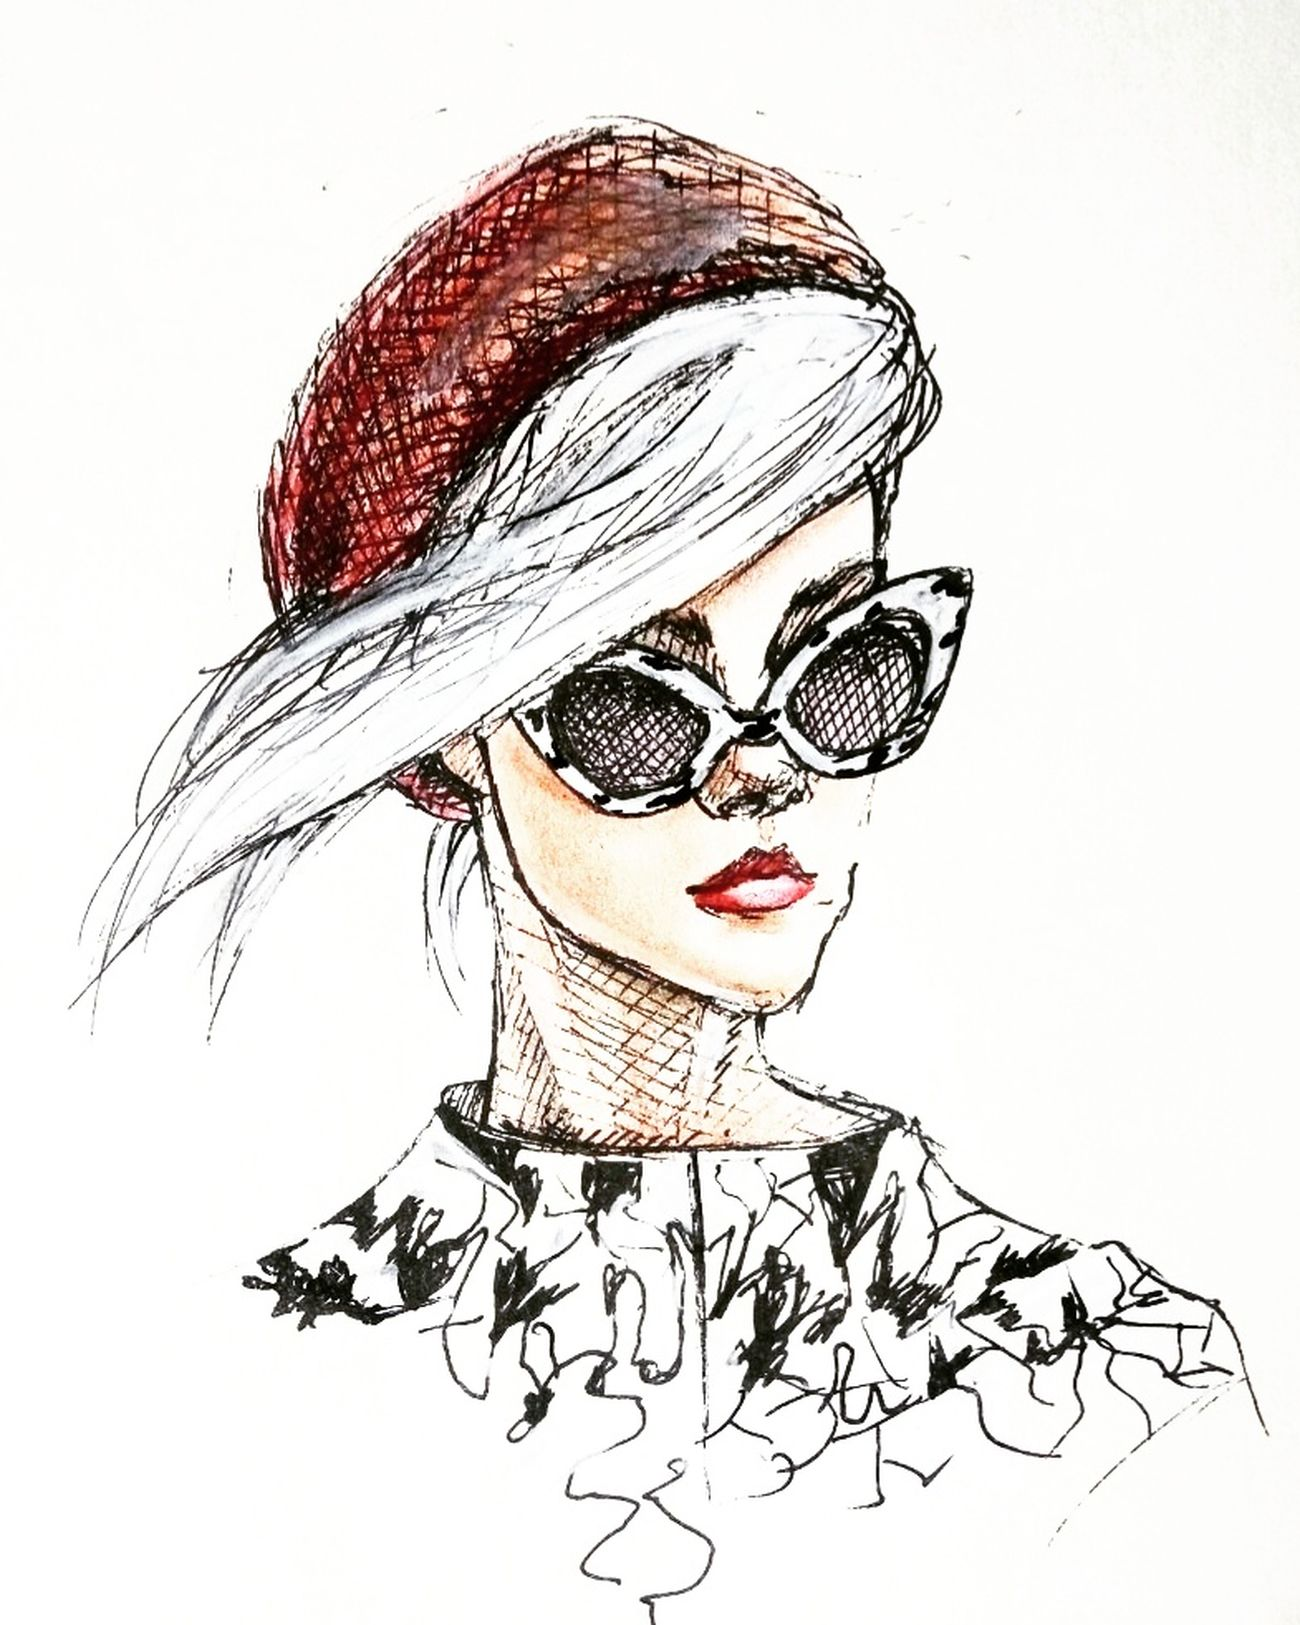 Quicksketch Pen Drawing Portrait MyArt Graphics Art Colored Pencil Fashionillustration Illustration